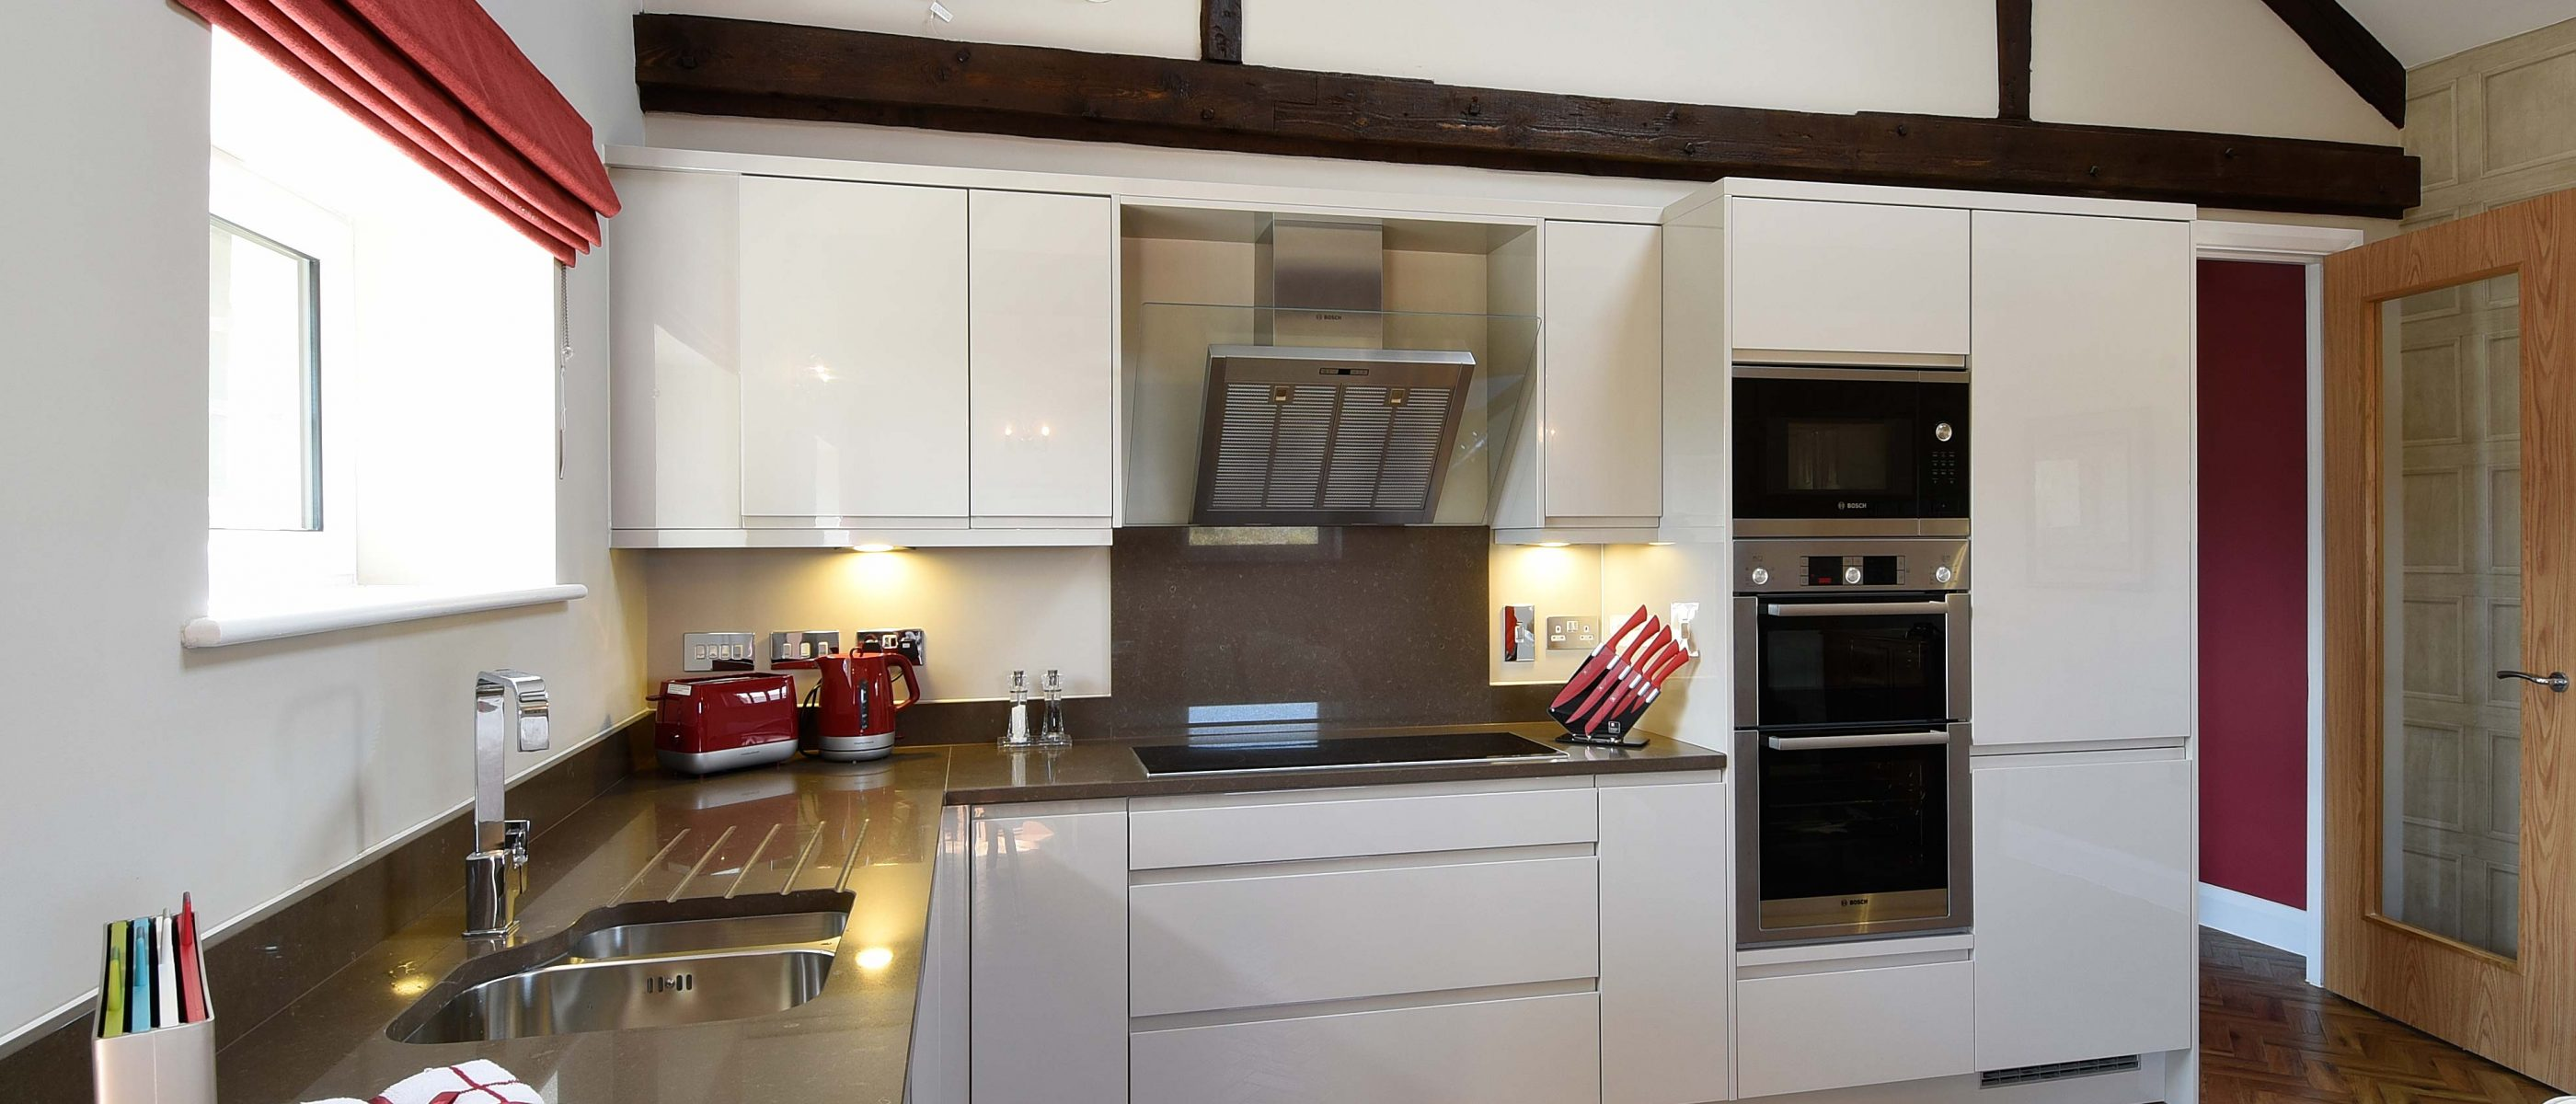 The kitchen in the Tomkins Suite: a one bedroom luxury serviced apartment at The Old Gaol, by the River Thames in Abingdon, near Oxford. Ideal accommodation for corporate or holiday short lets